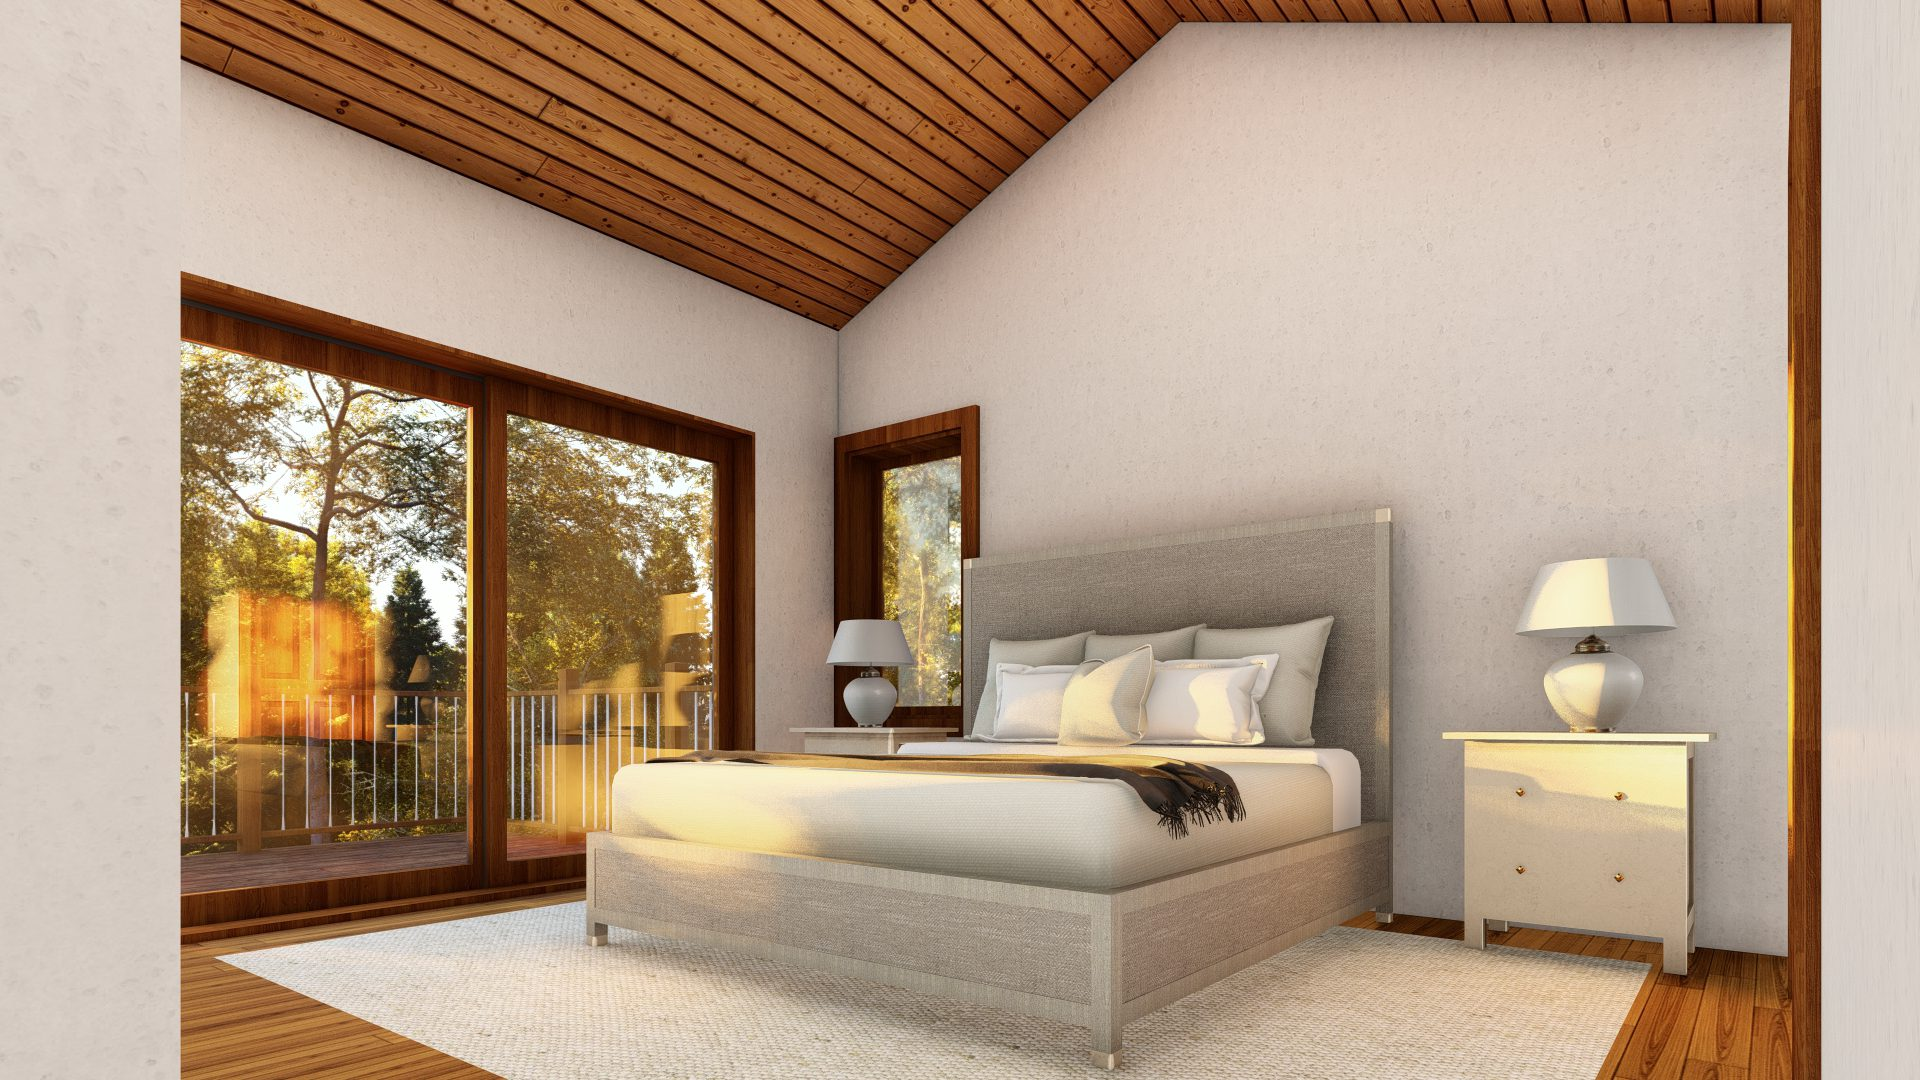 Normerica Timber Frames, House Plans, The Tobermory 3949, Interior, Bedroom 2